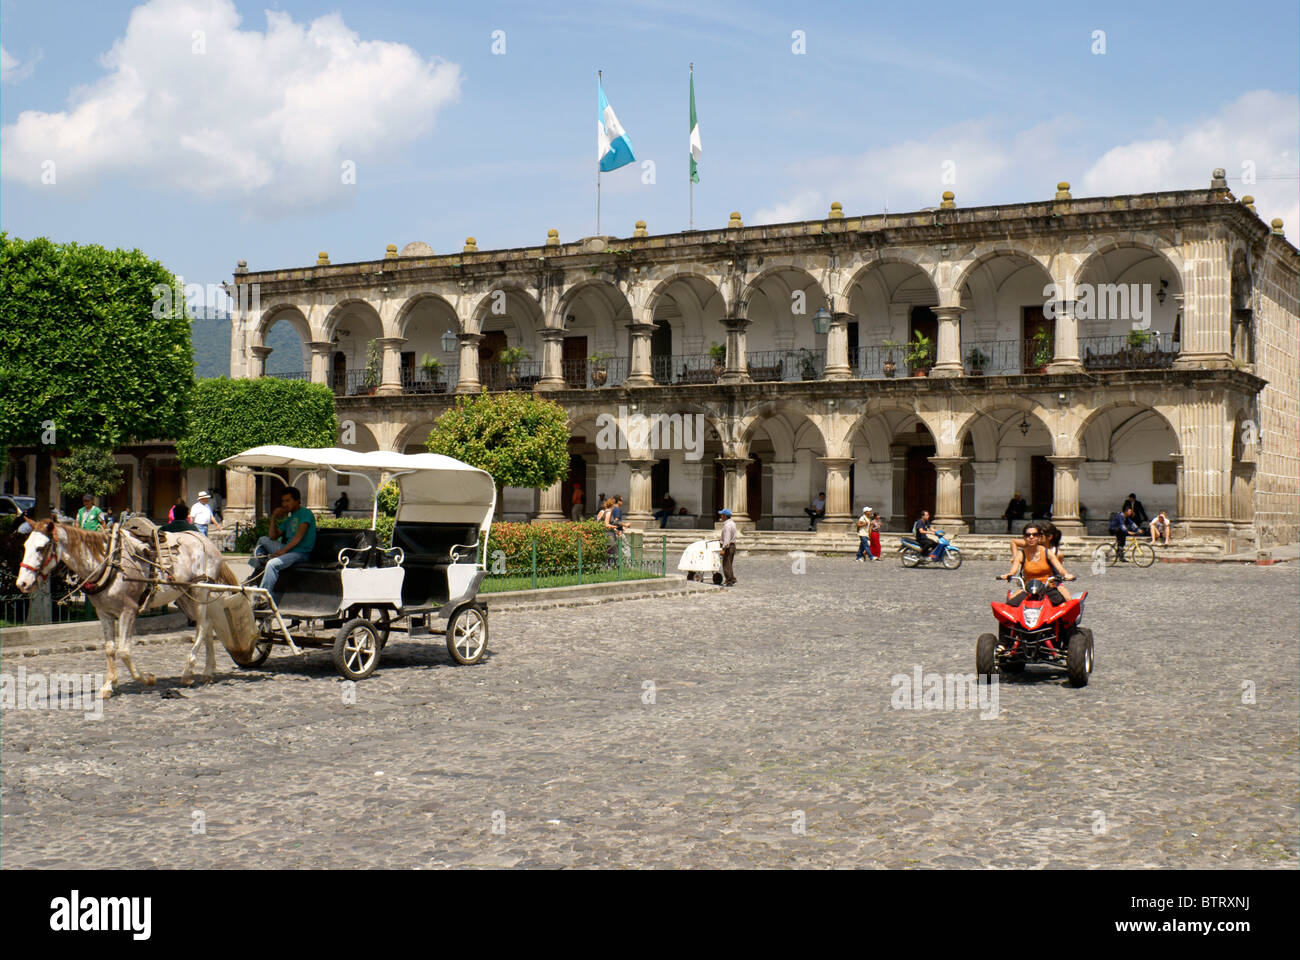 Horse and carriage and ATV in front of Palacio de Ayuntamiento or City Hall facing the Parque Central, Antigua, - Stock Image